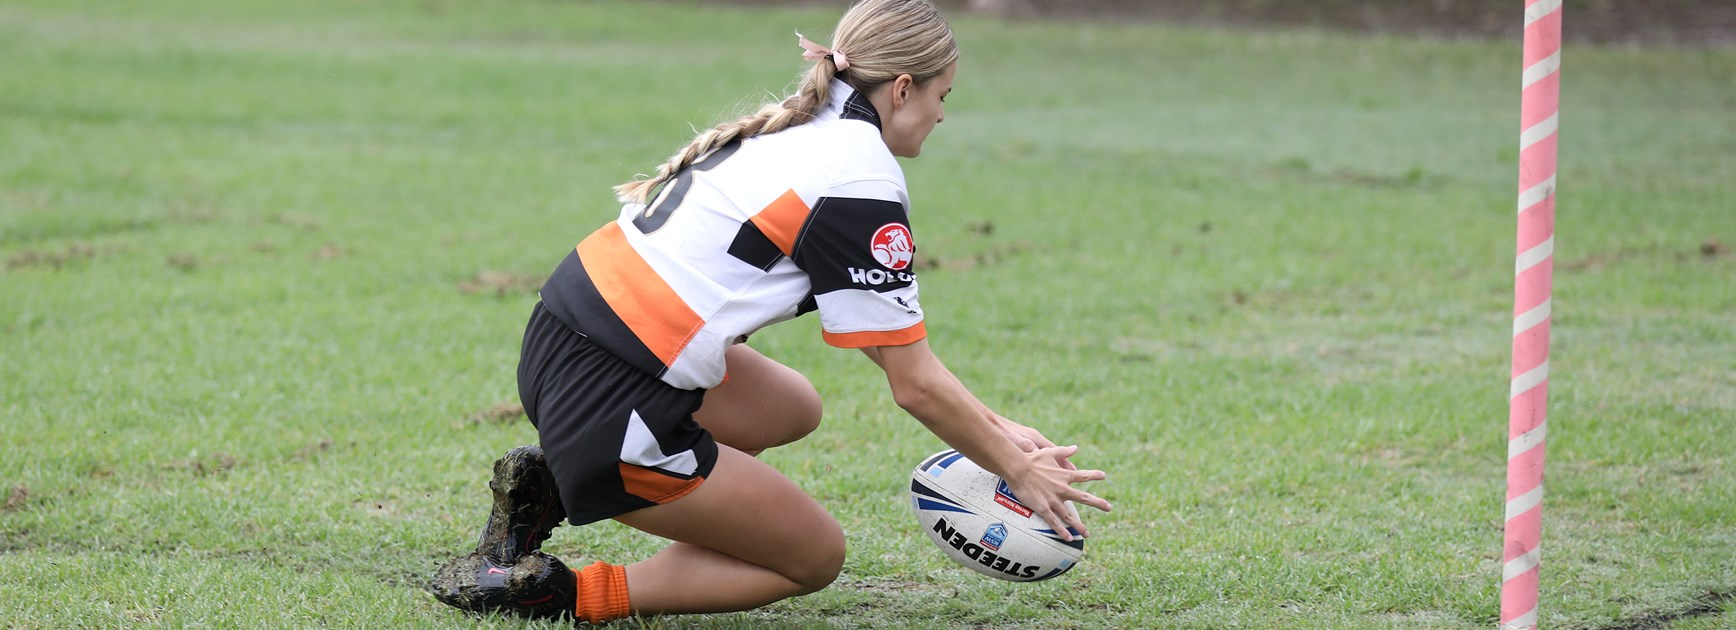 Wests Tigers stun Steelers to book finals berth